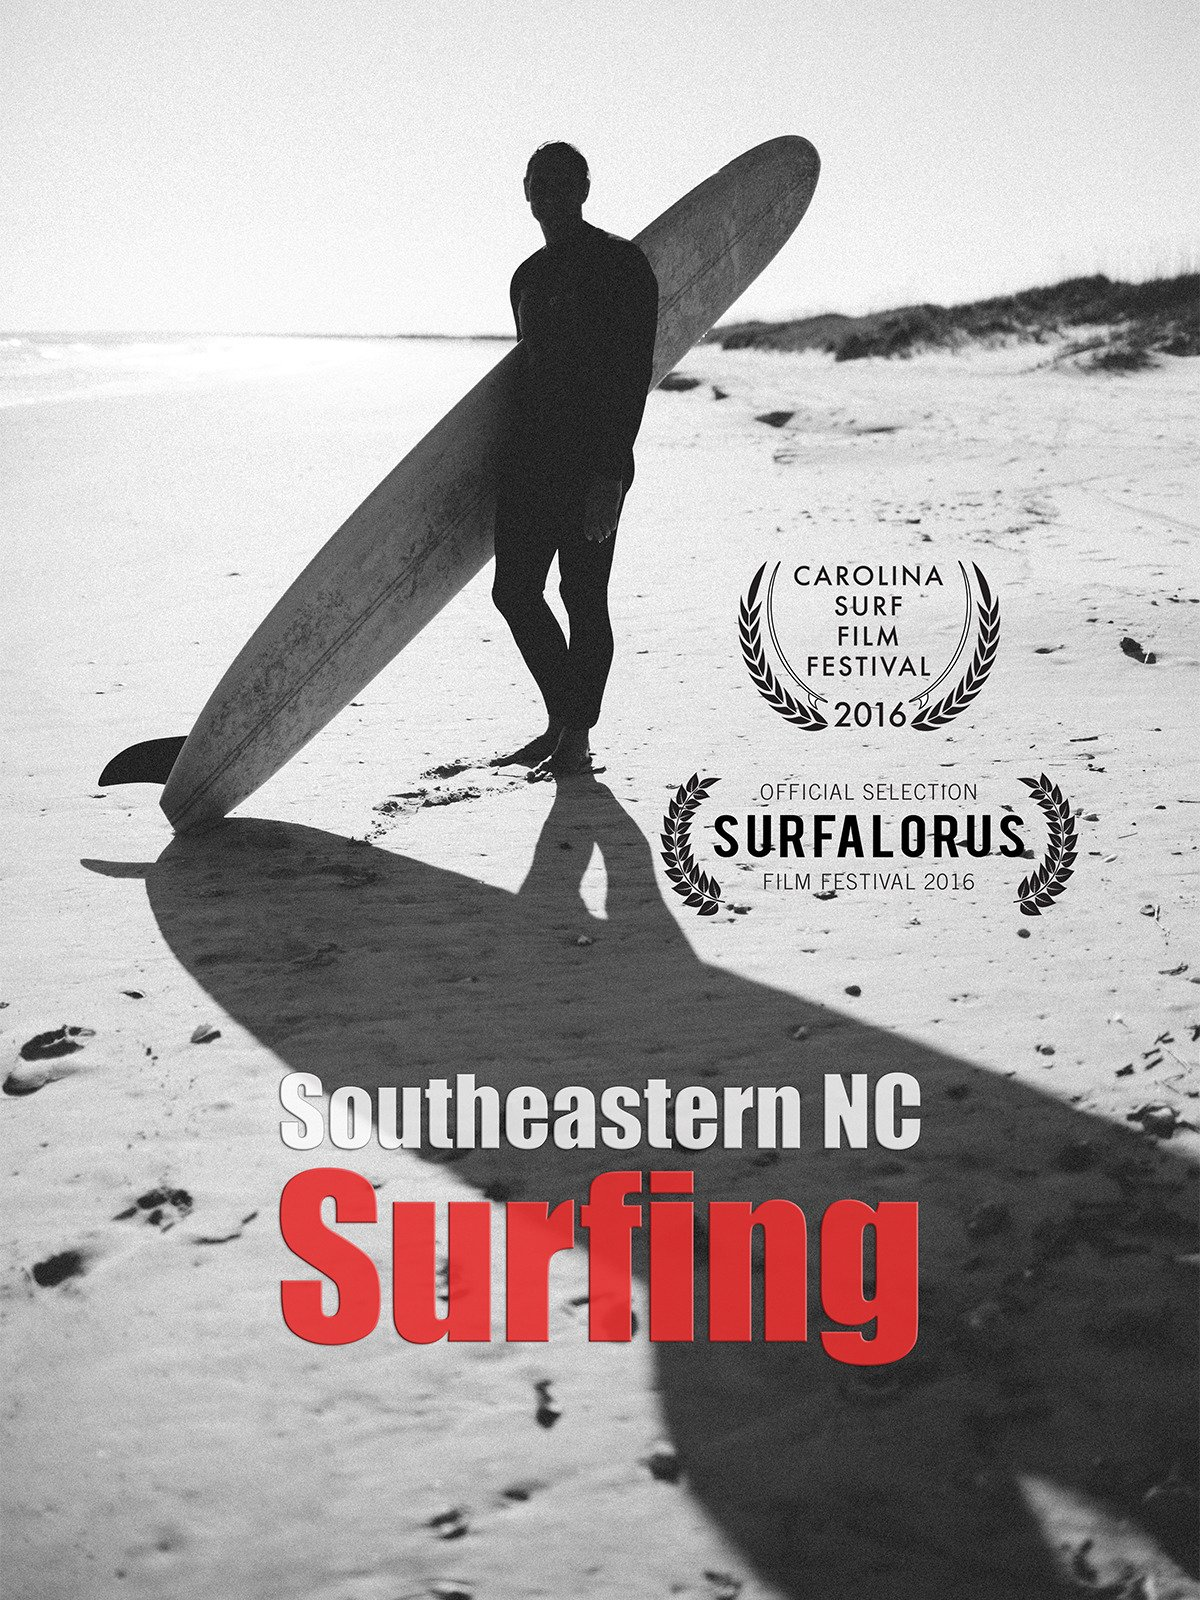 Southeastern NC Surfing